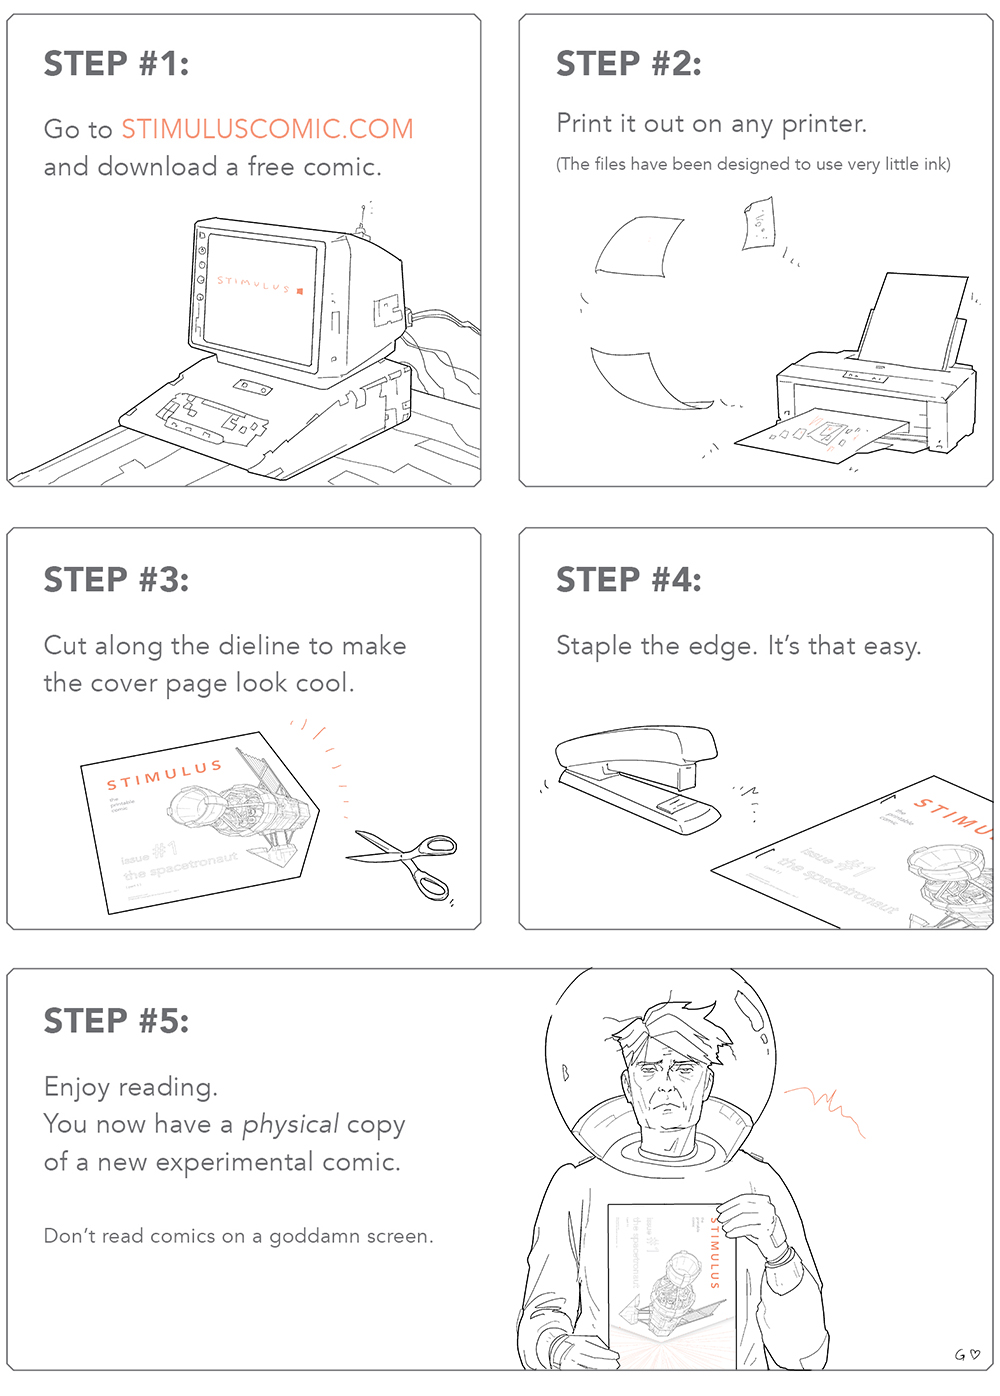 howtoprint